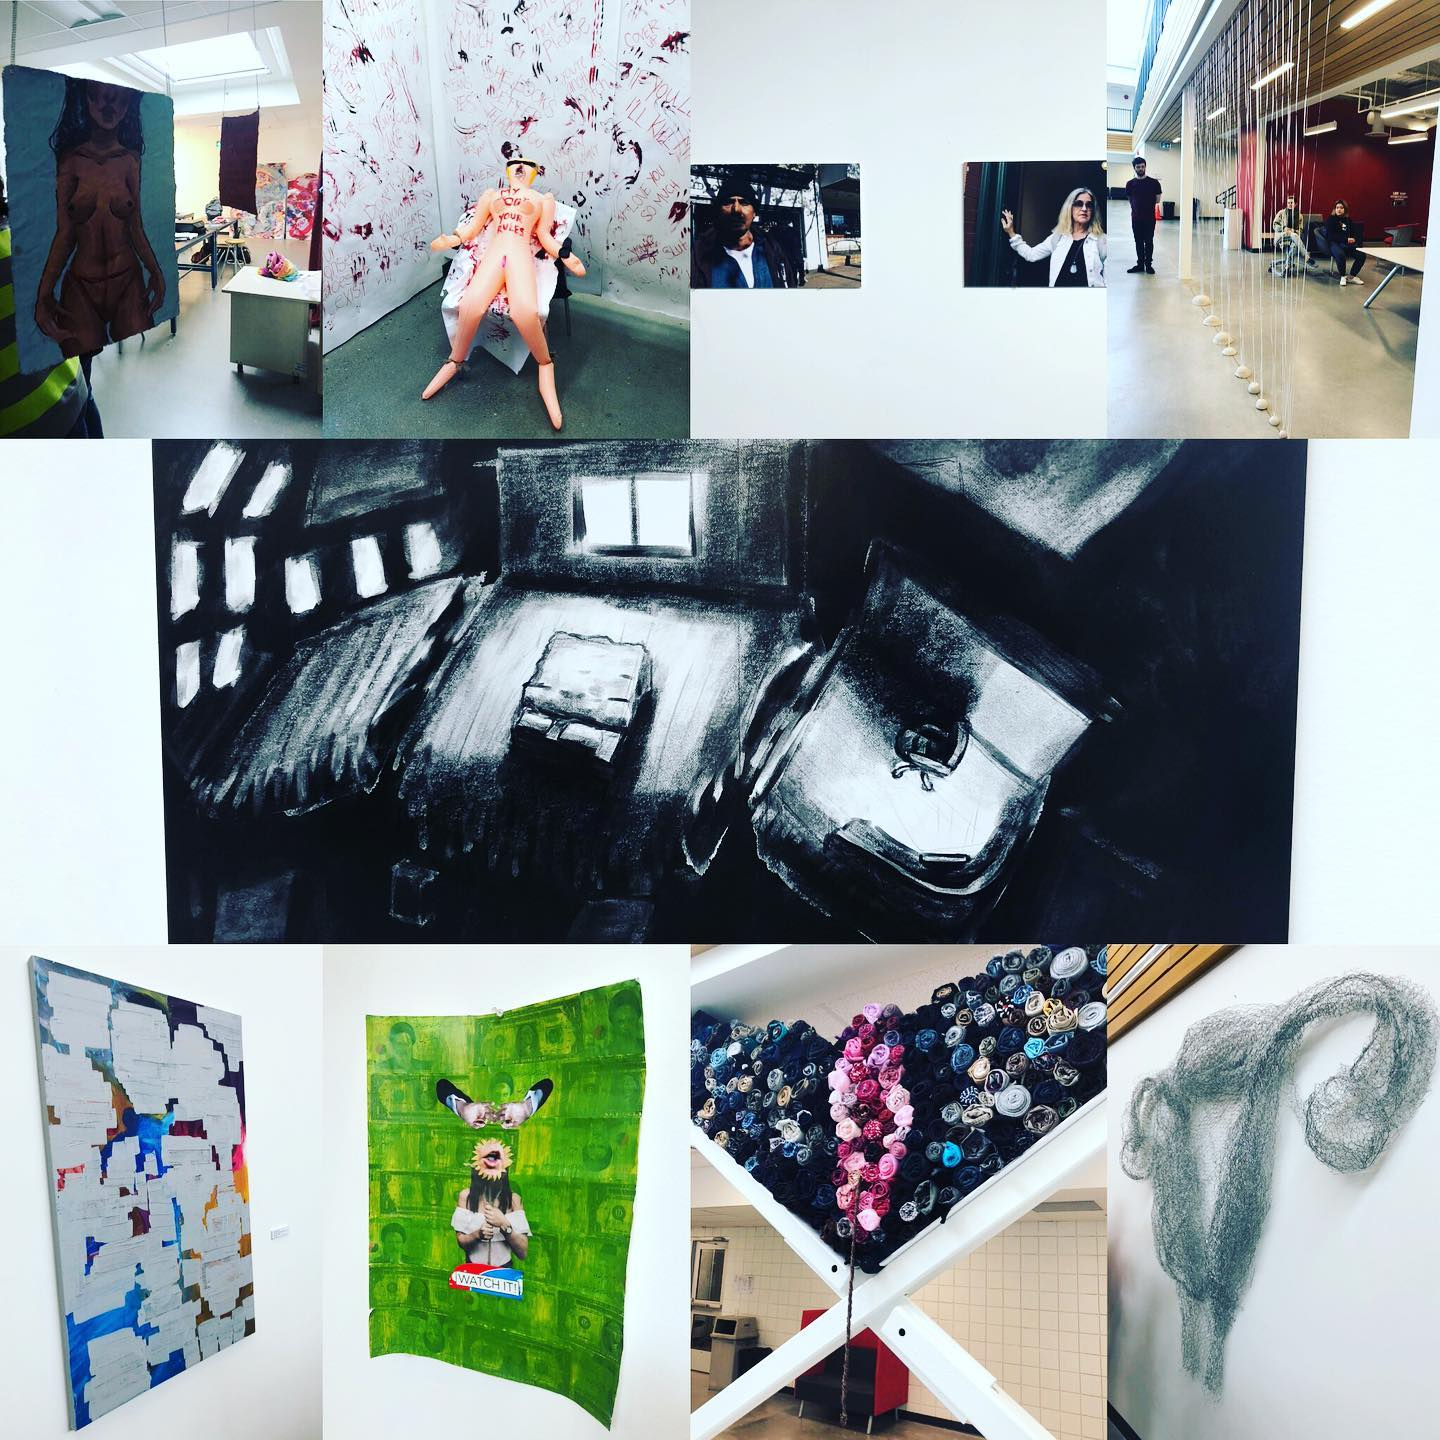 Studio critique of final projects produced in a tight time-frame of under three weeks. Learn more about each project as student bios are published on my blog through the month of June.